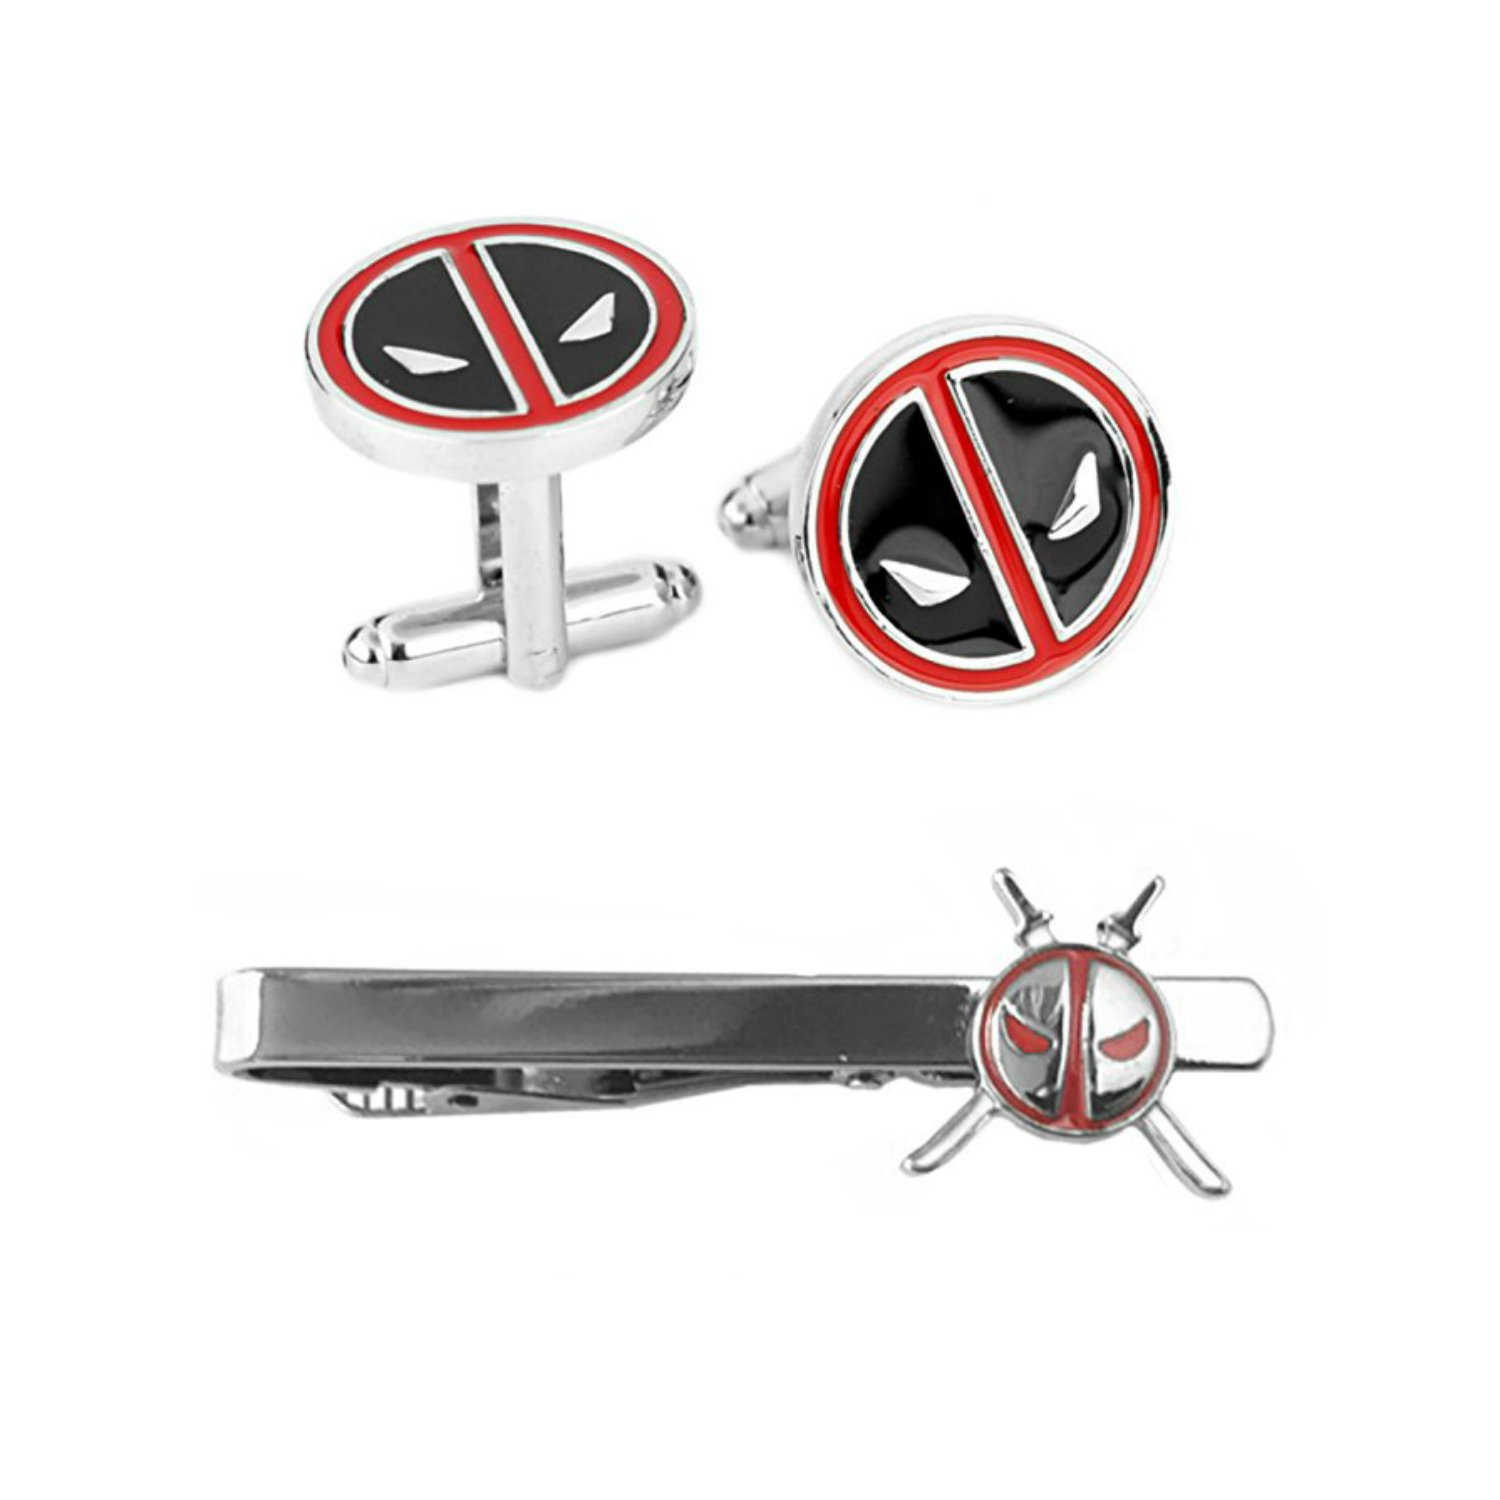 Outlander Deadpool Cufflink & Deadpool Katanas Tiebar - New 2018 Marvel Studios Superhero Movies - Set of 2 Wedding Logo w/Gift Box